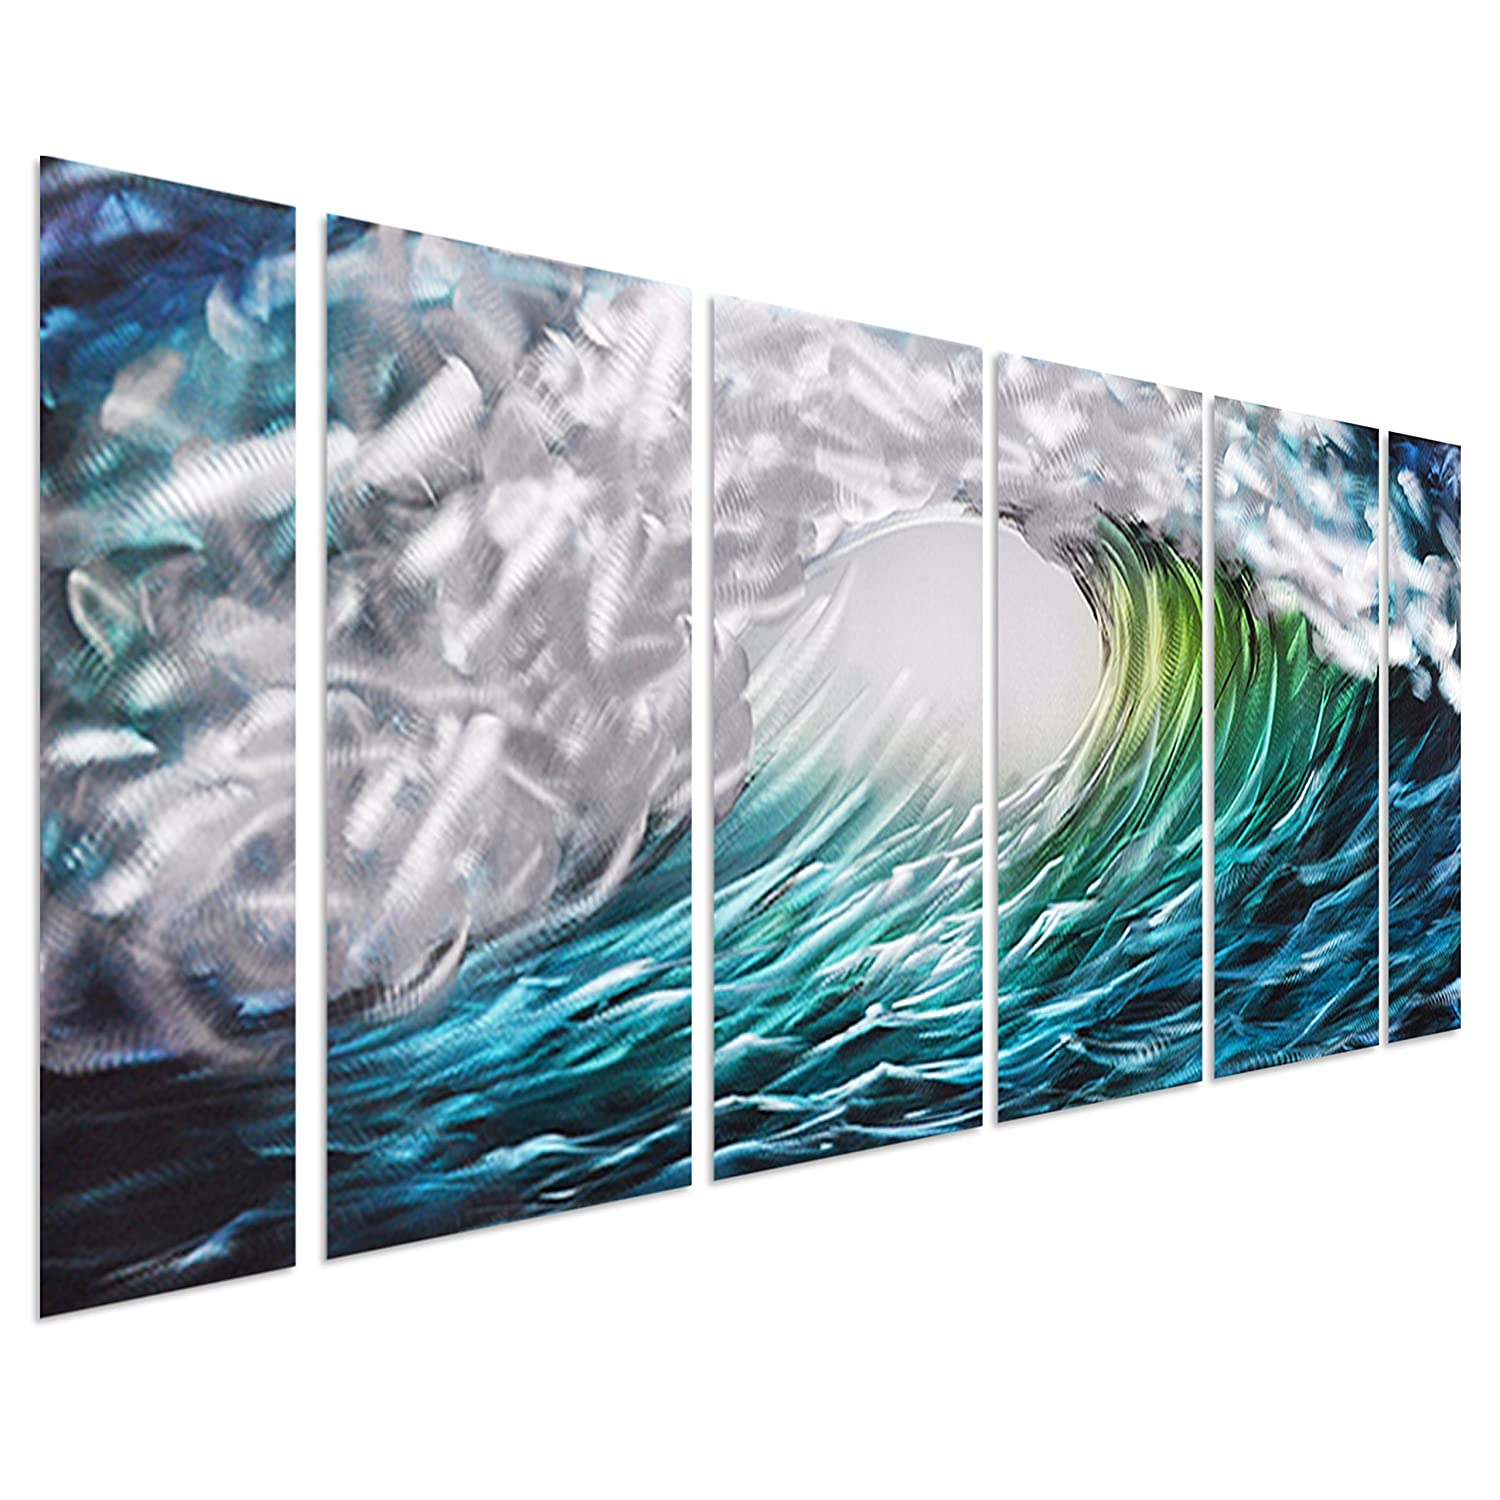 Amazon pure art the great wave off kanagawa sea storm metal amazon pure art the great wave off kanagawa sea storm metal wall art decor aquatic beach of greens blues turquoises and silvers set of 6 amipublicfo Gallery